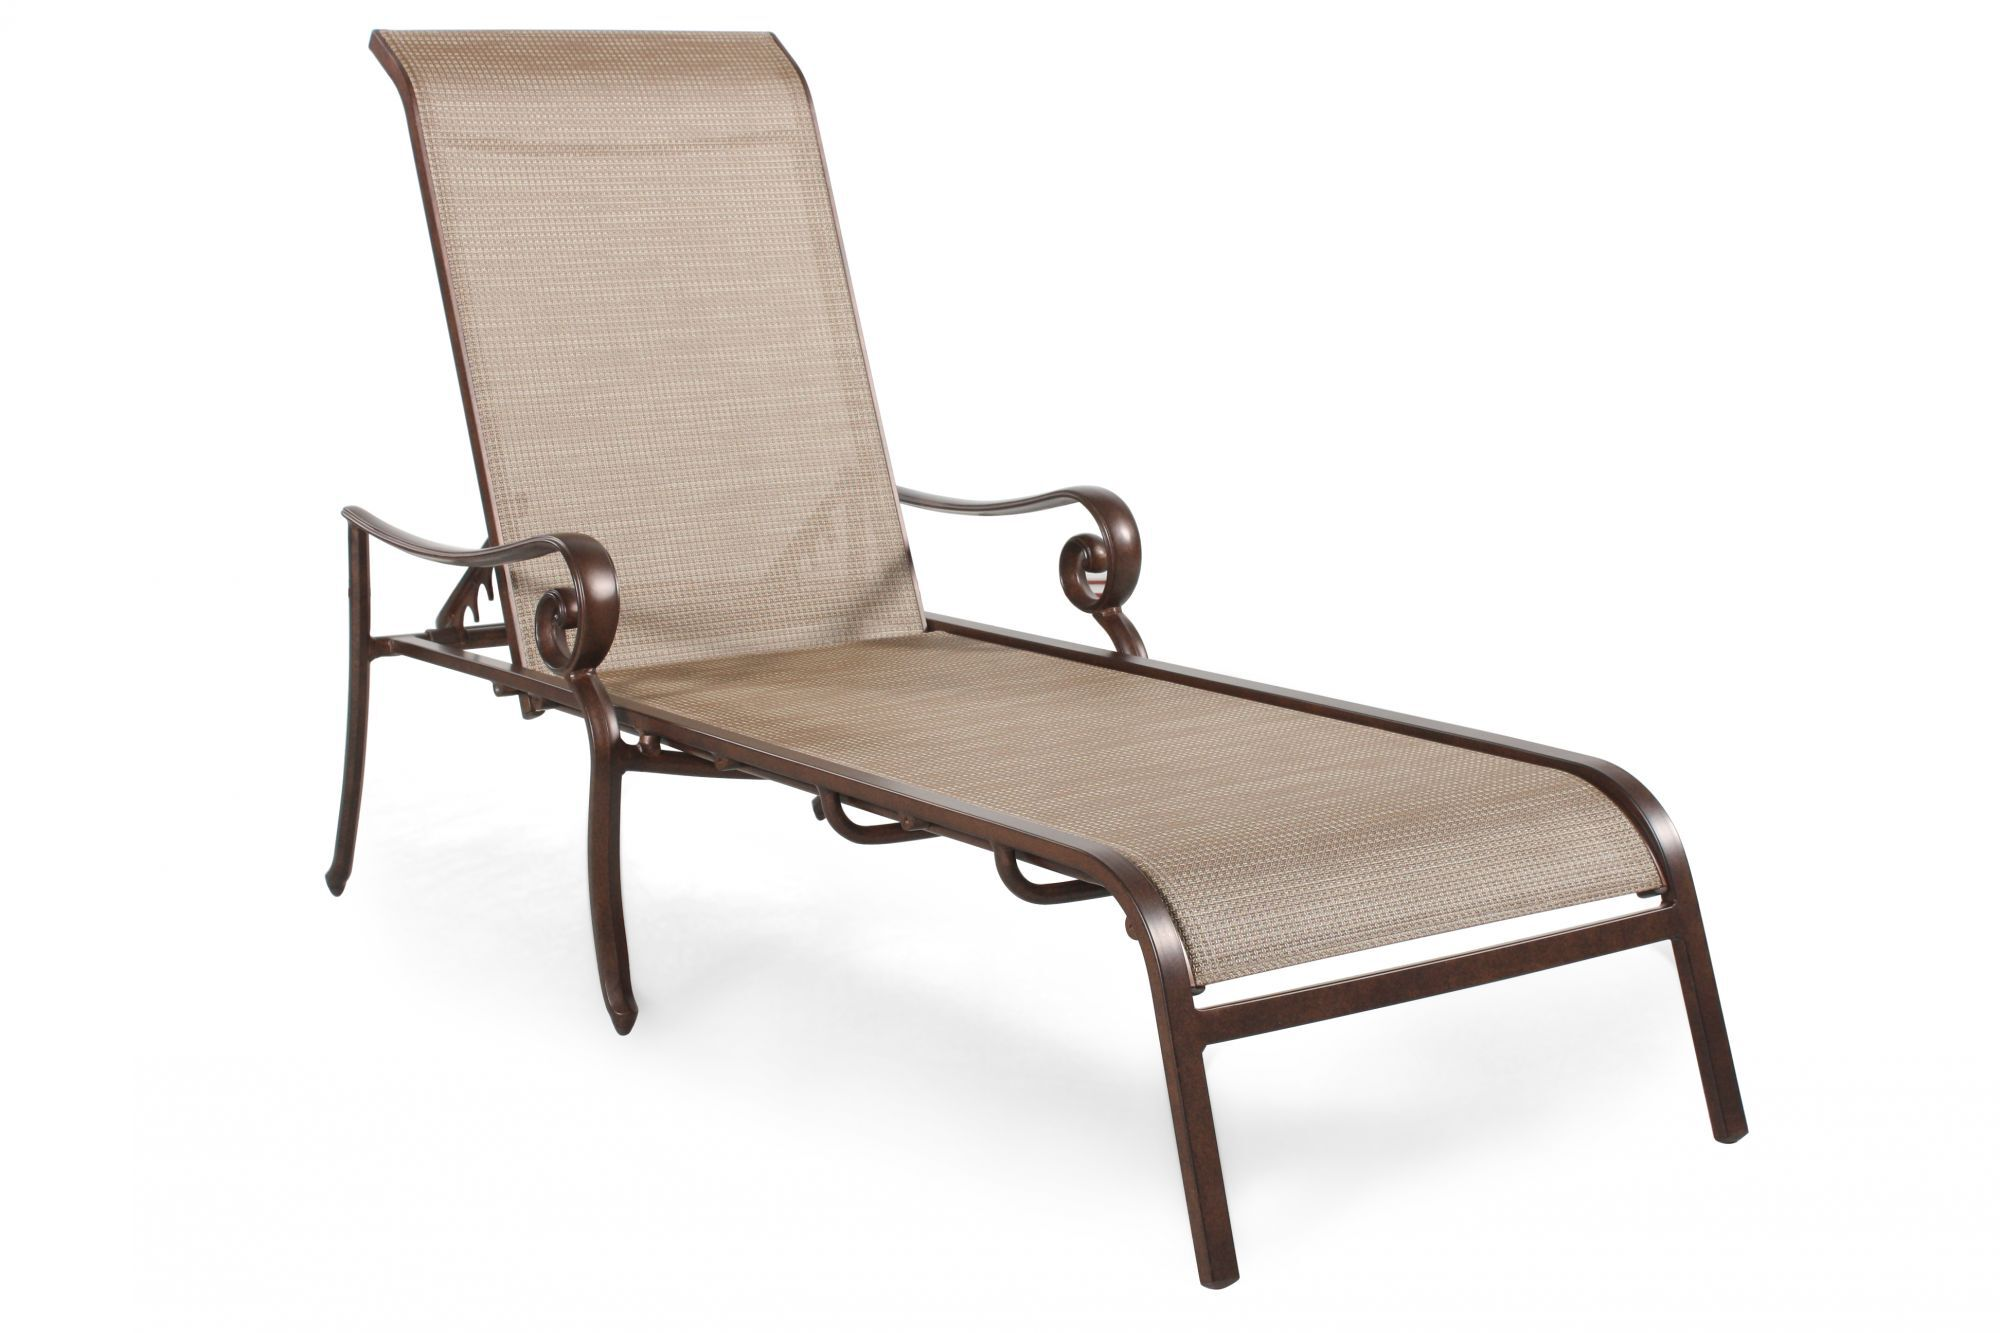 Sling Chaise Lounge Outdoor Part - 48: Agio Burgandy Sling Chaise Lounge